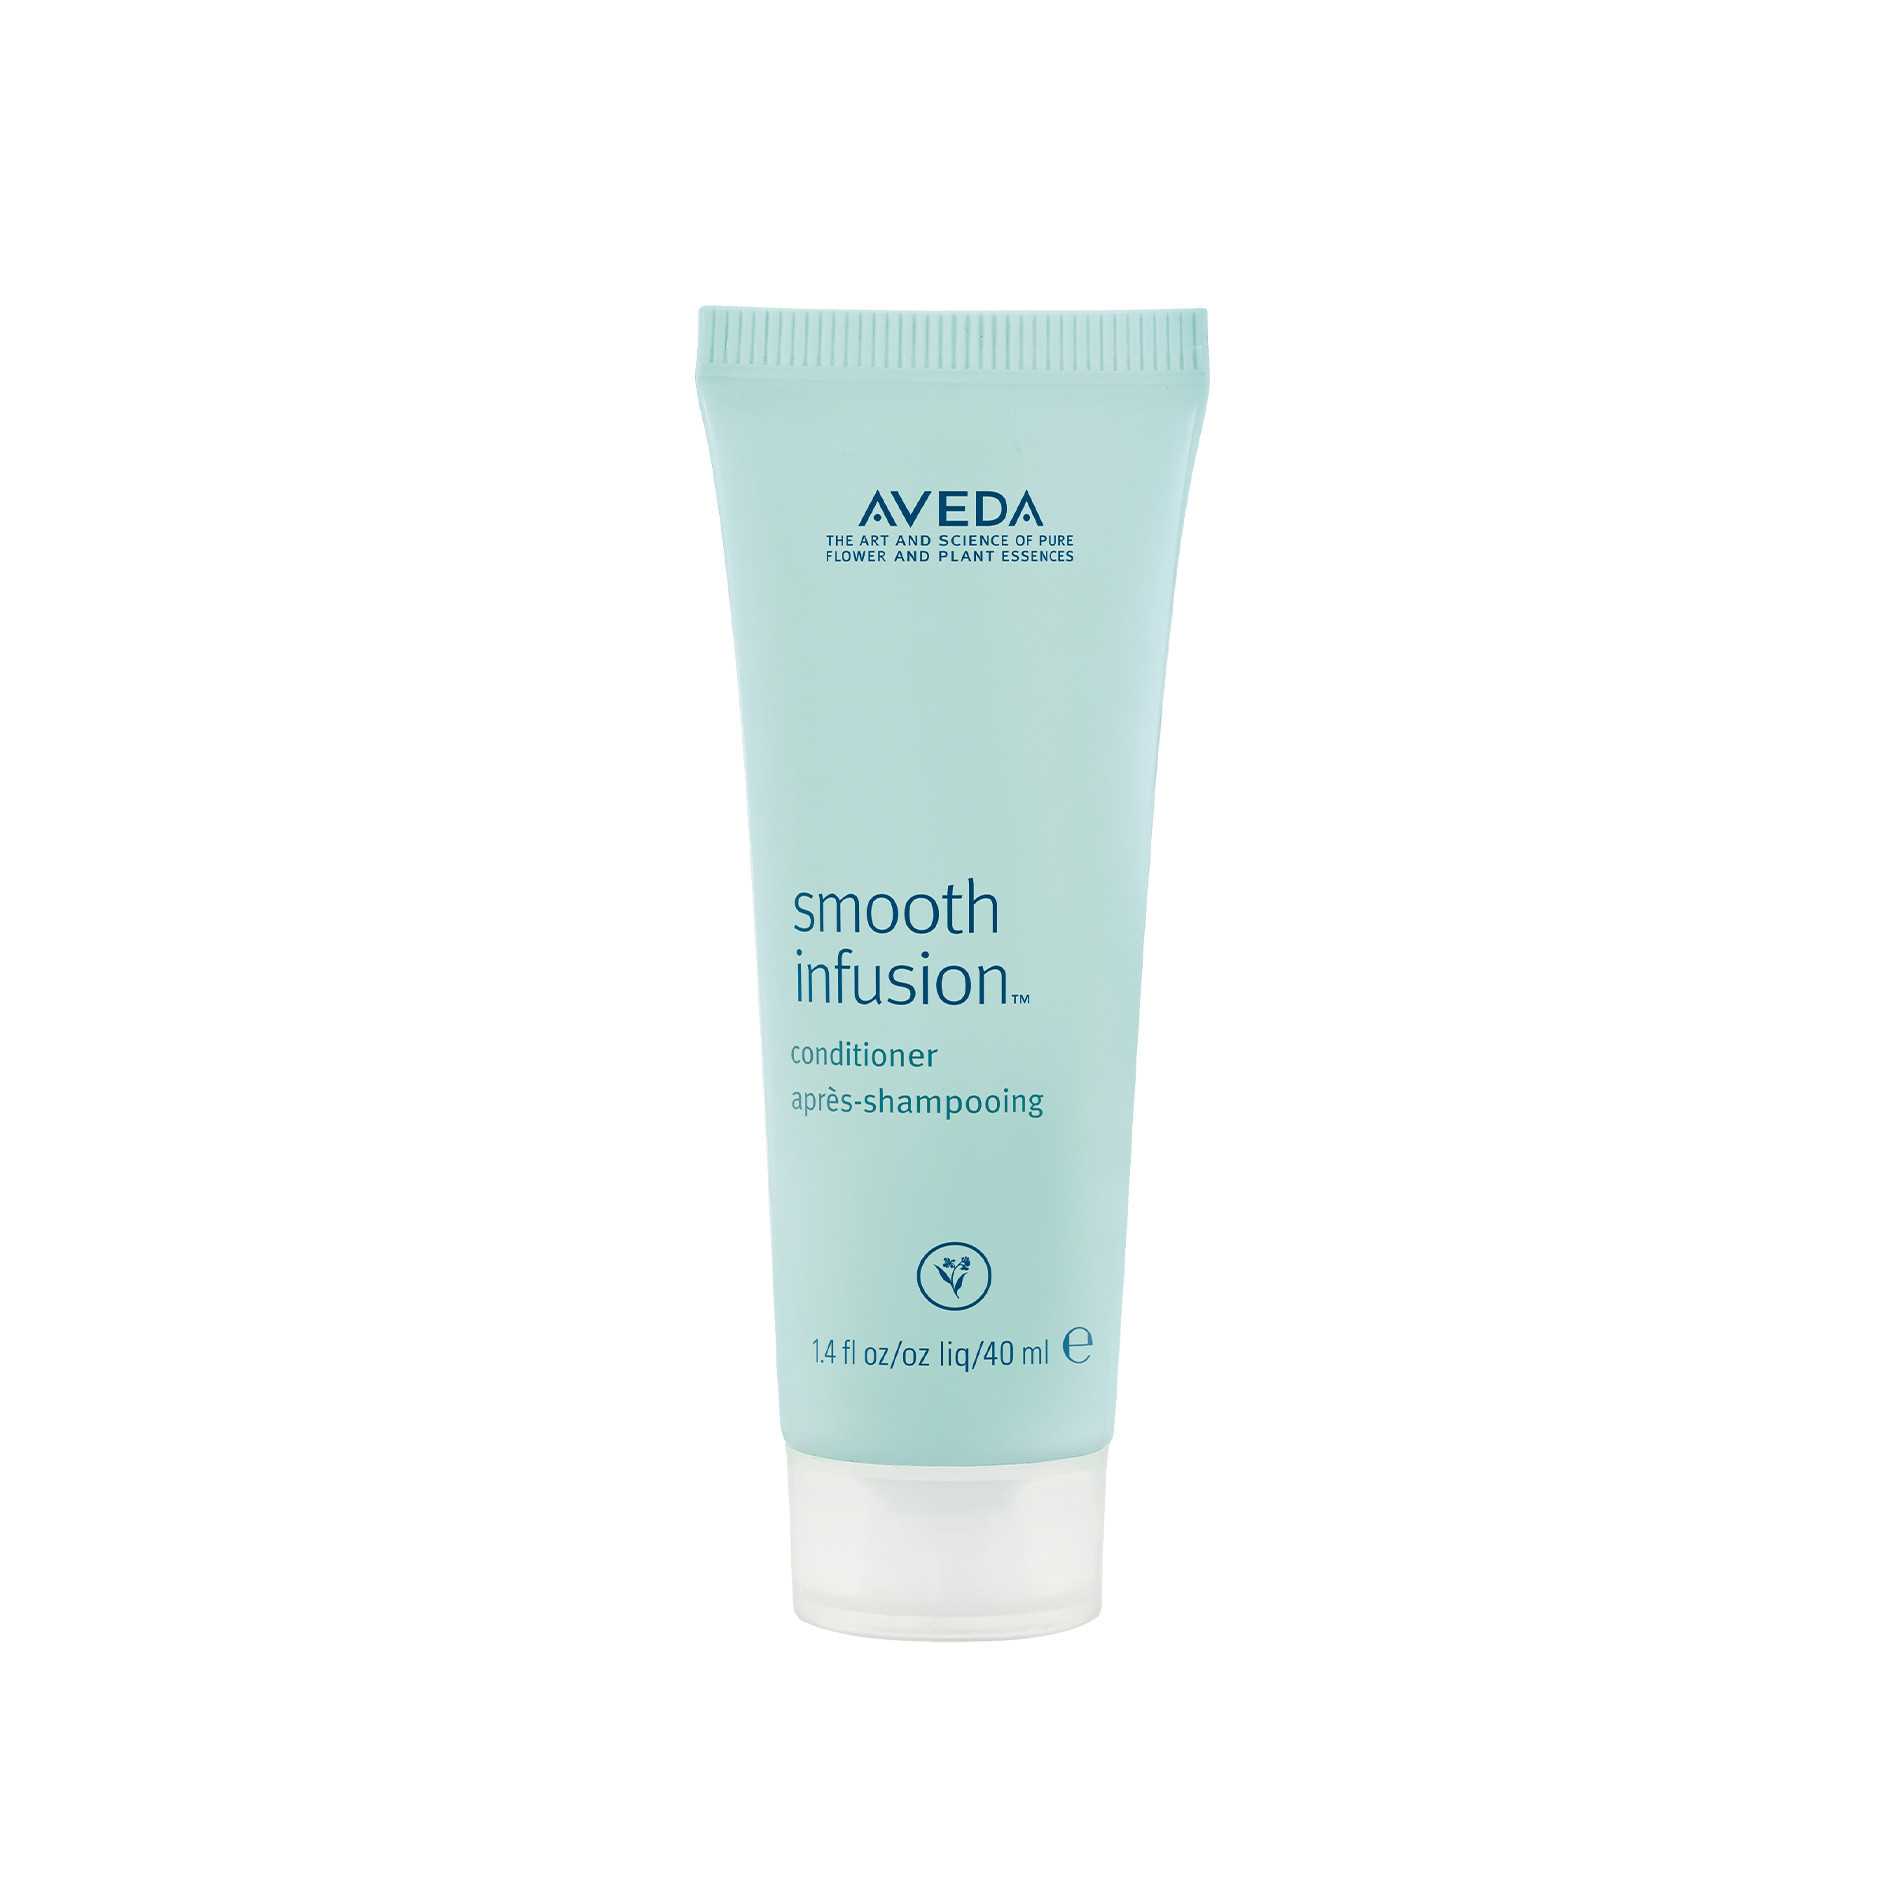 Aveda smooth infusion conditioner 40 ml, Azzurro, large image number 0